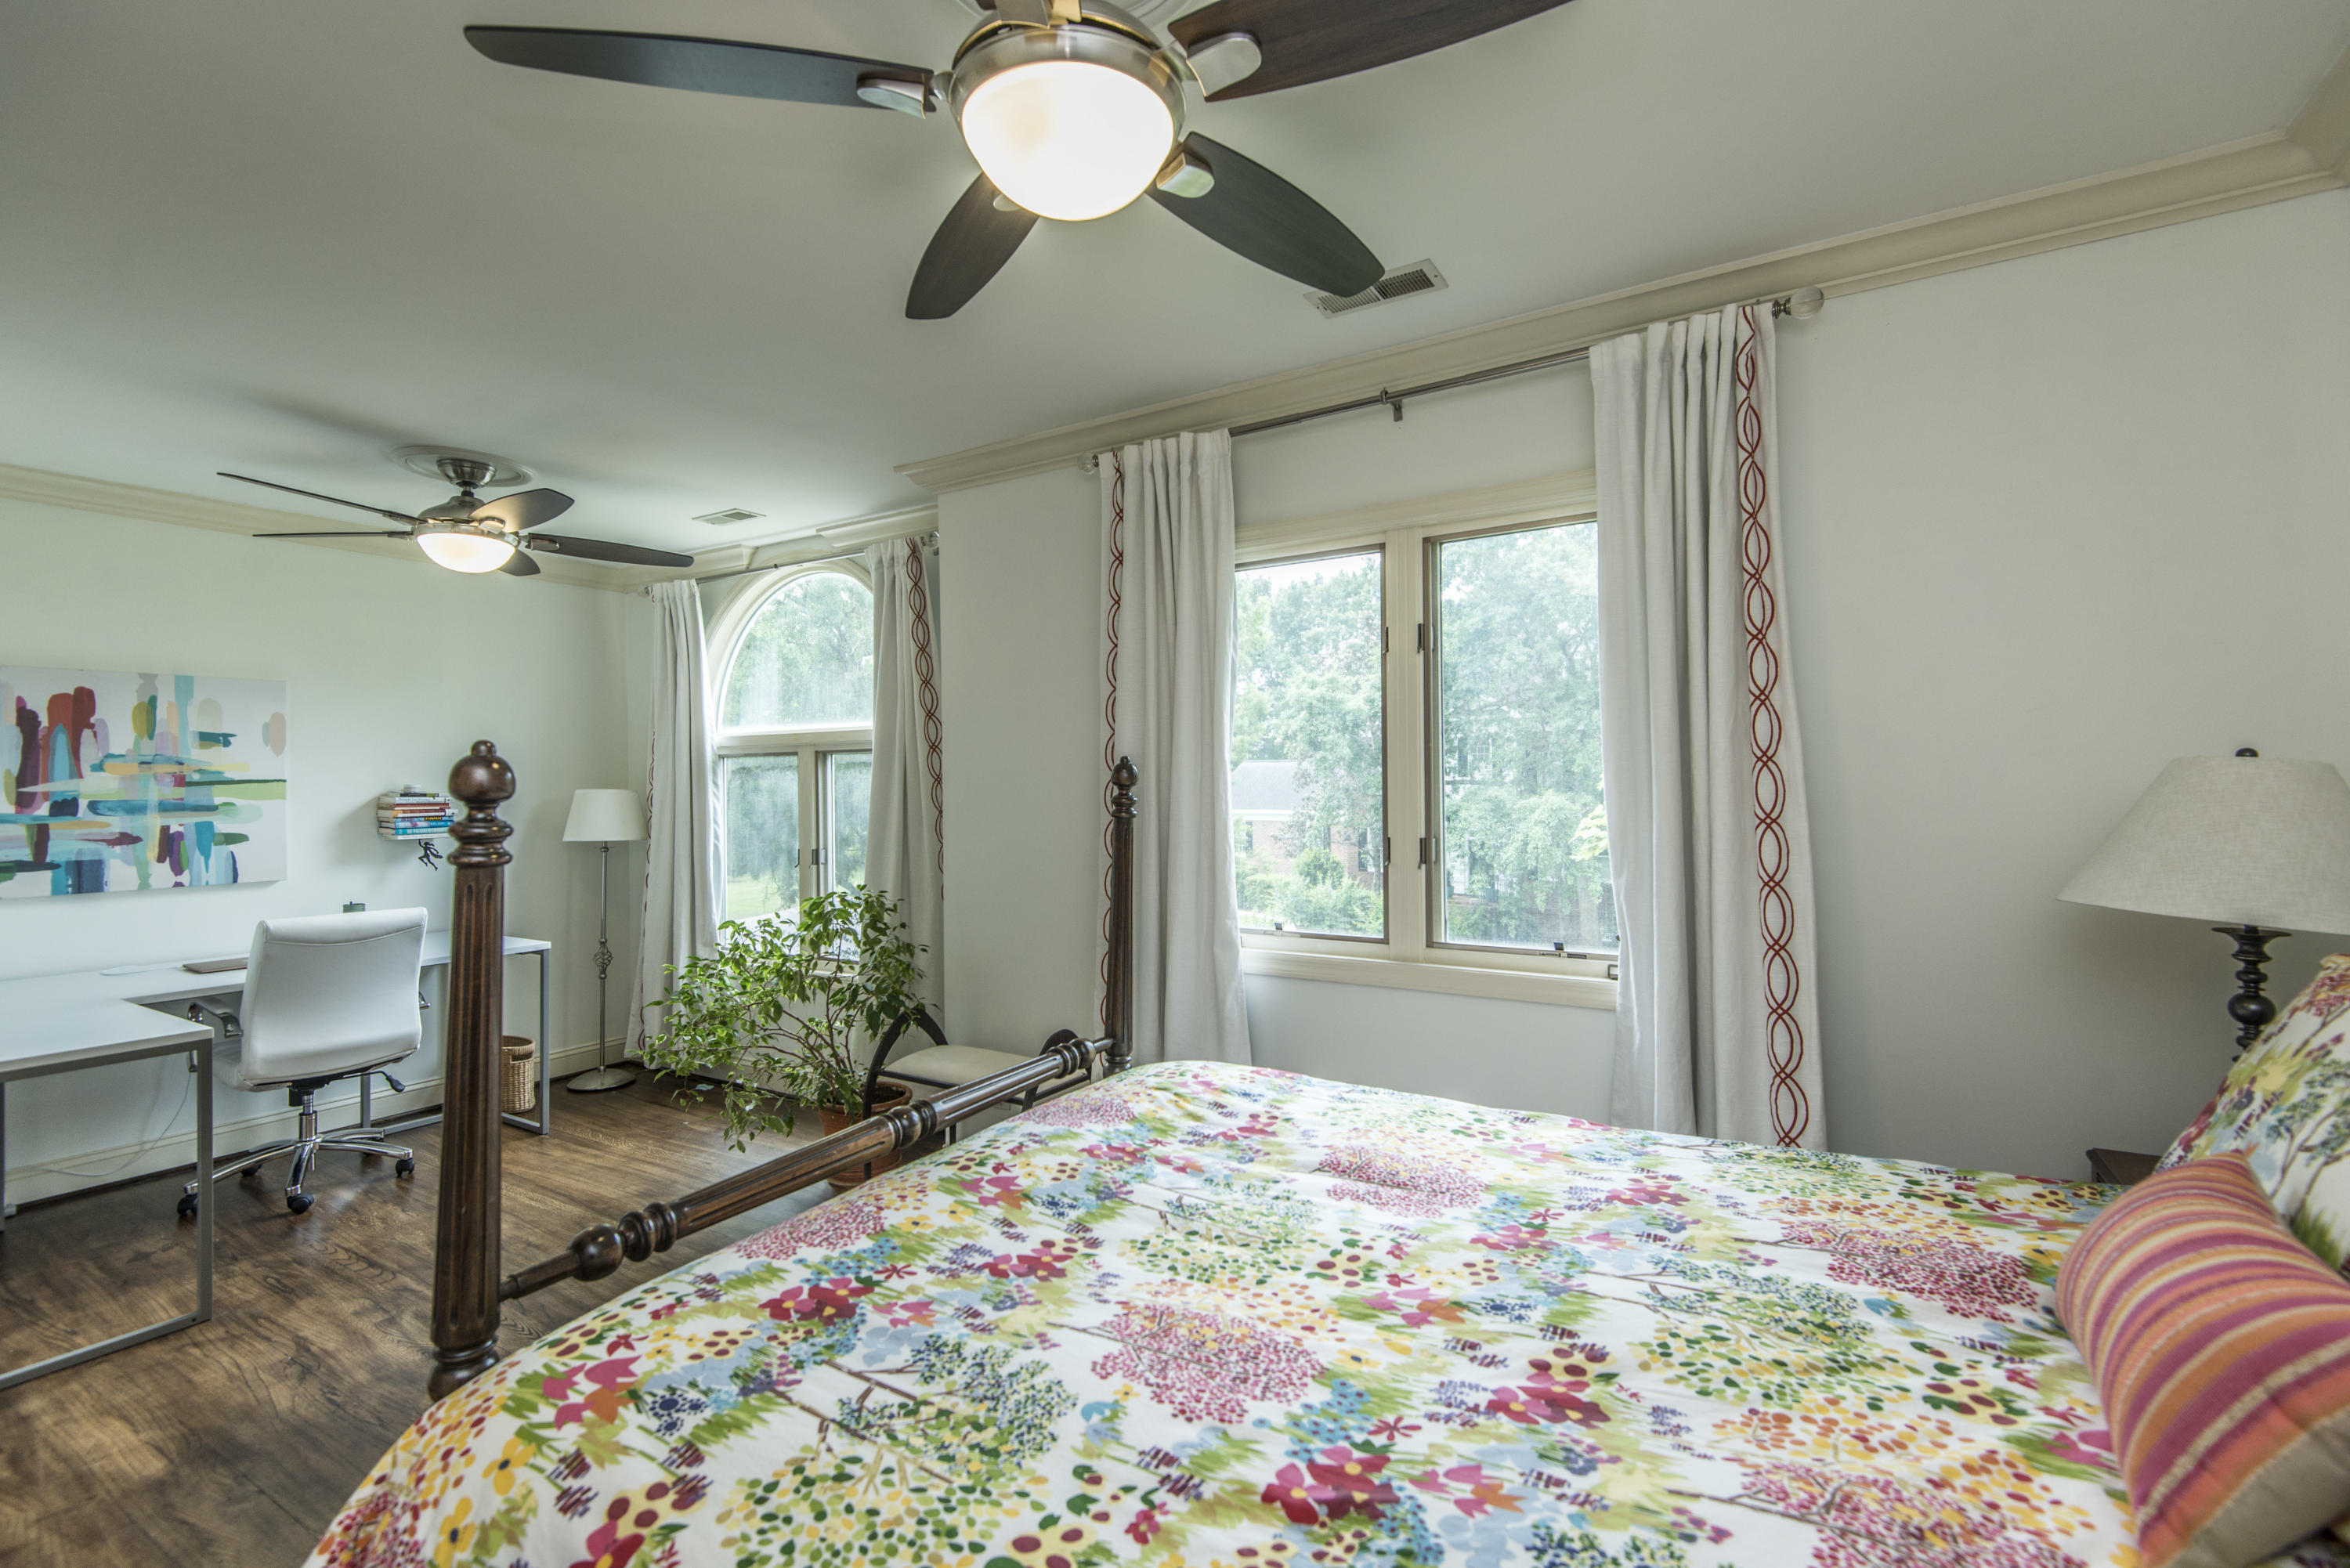 Stiles Point Plantation Homes For Sale - 921 Cotton House, Charleston, SC - 20